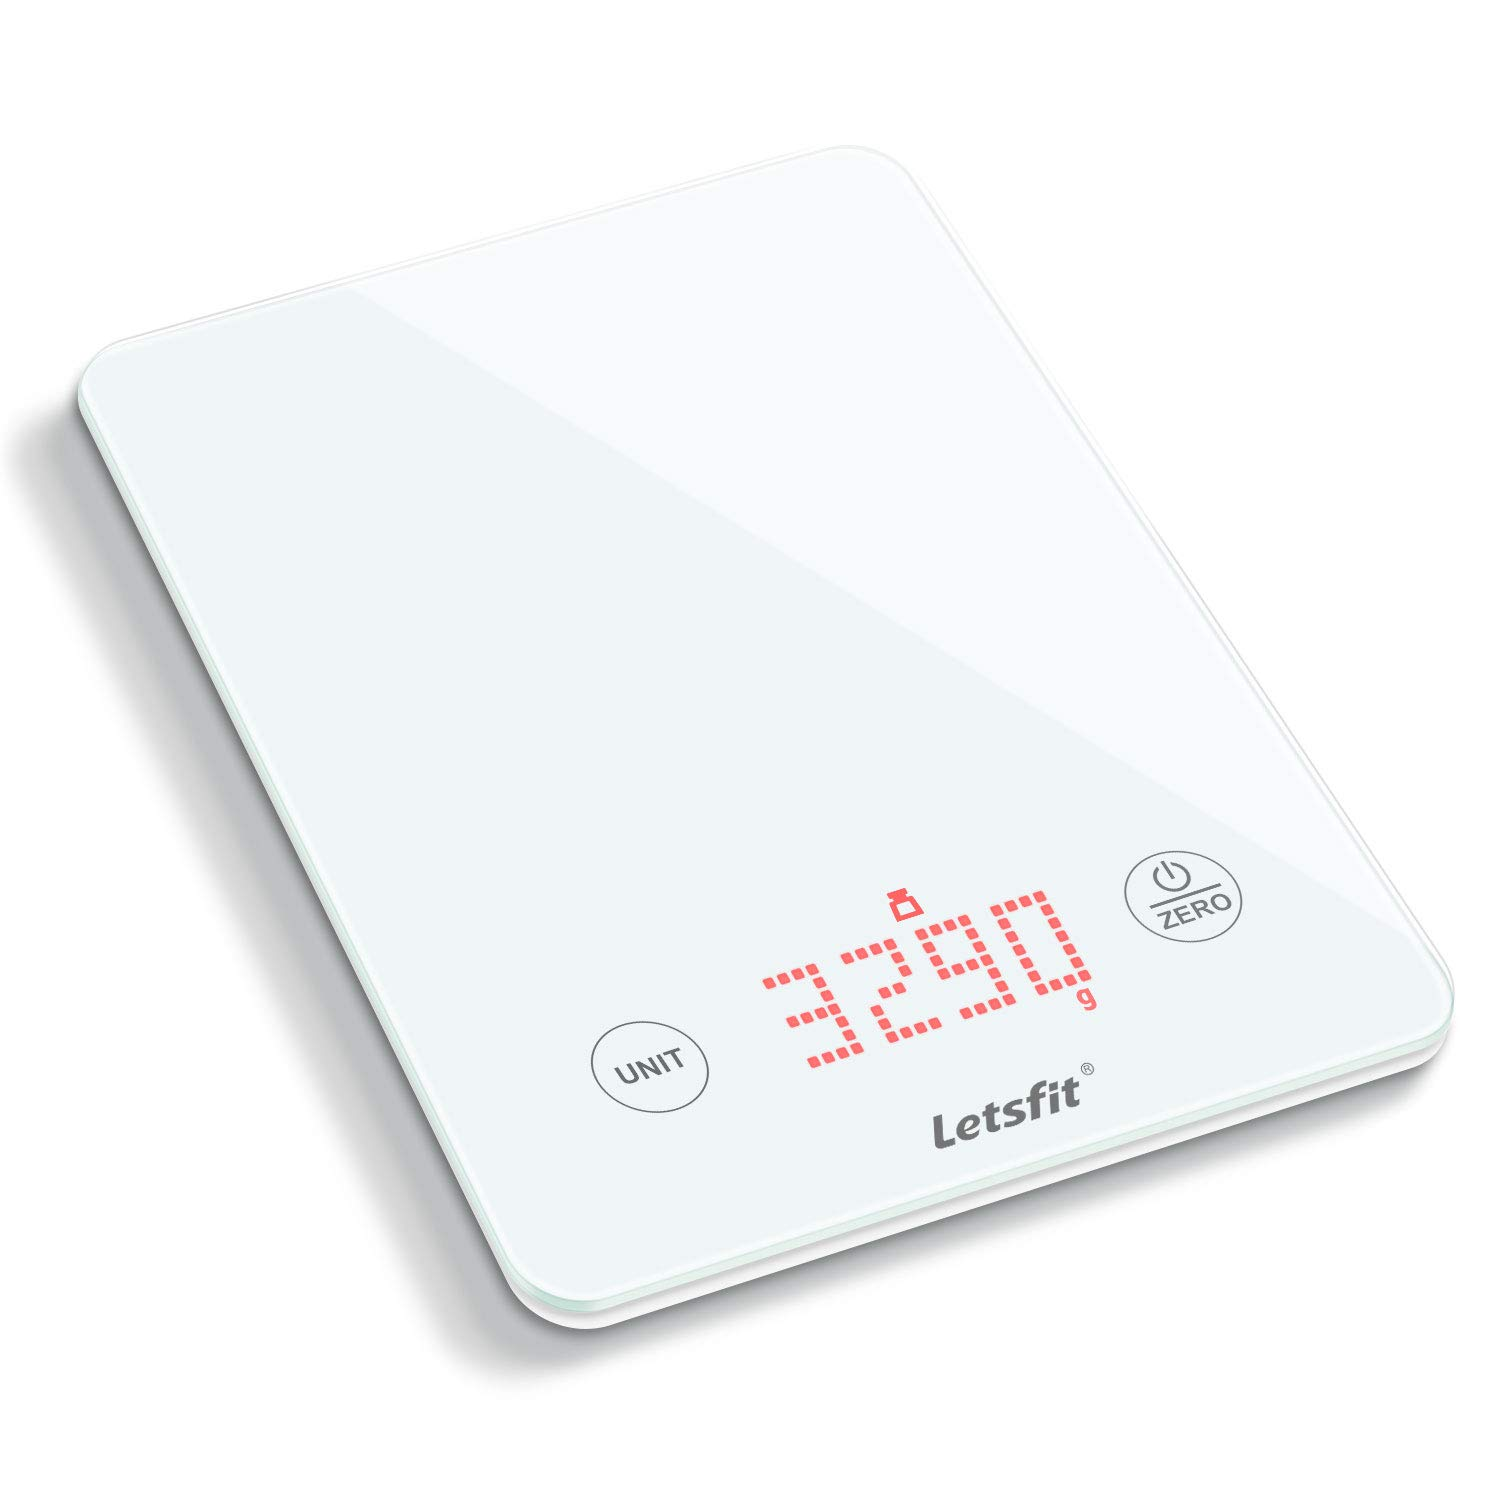 Letsfit Digital Kitchen Scale, Multifunction Food Scale and LED Screen Display, Glass Platform, Capacity Range from 0.1oz (1g) to 11lbs (5000g), Batteries Included by Letsfit